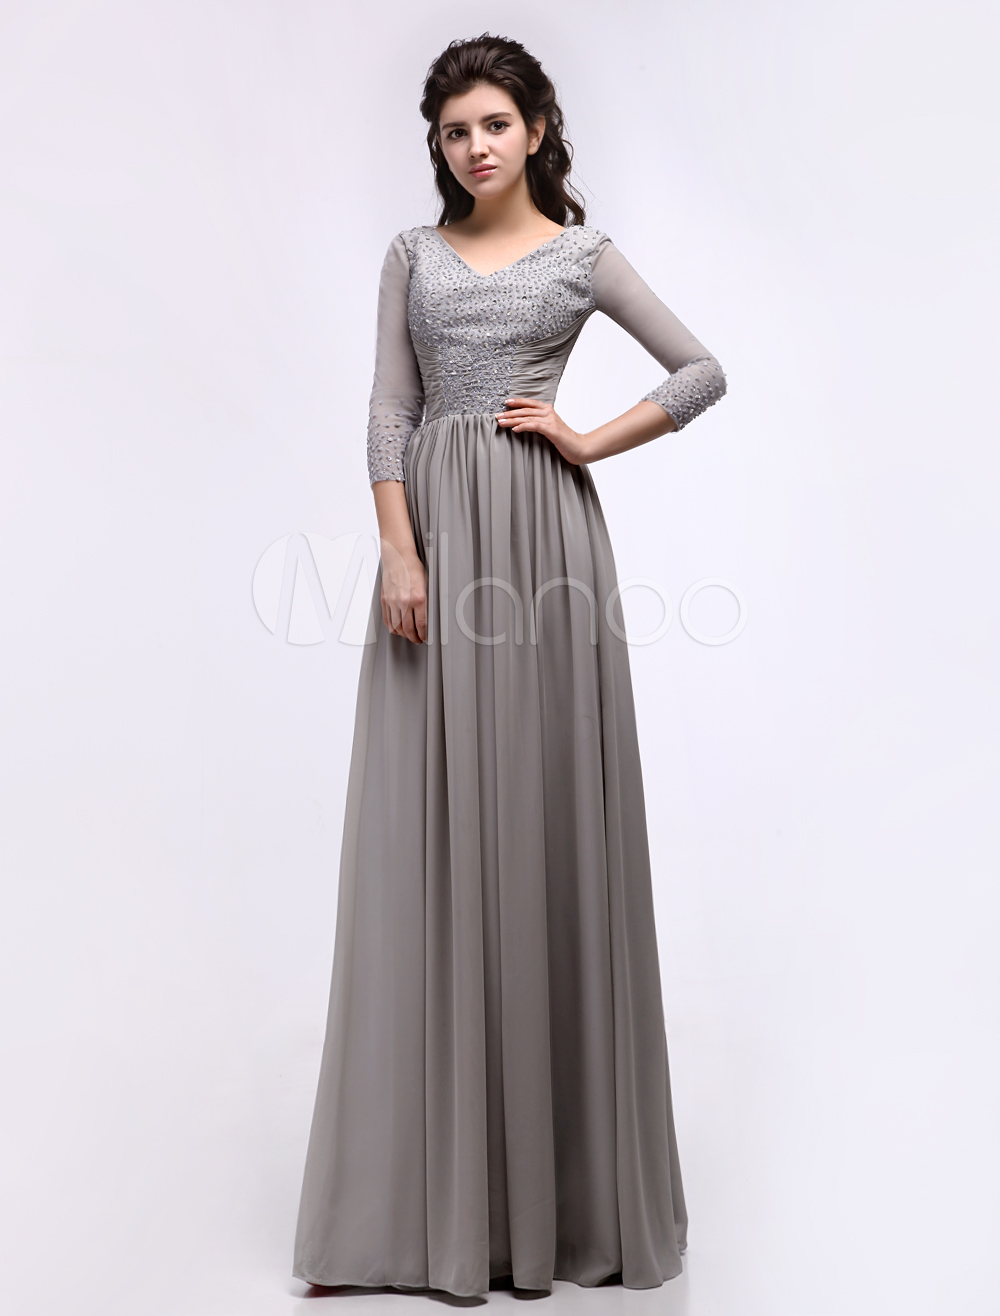 Silver Sheath V-Neck Ruched Chiffon Dress For Mother of the Bride with 3/4 Length Sleeves